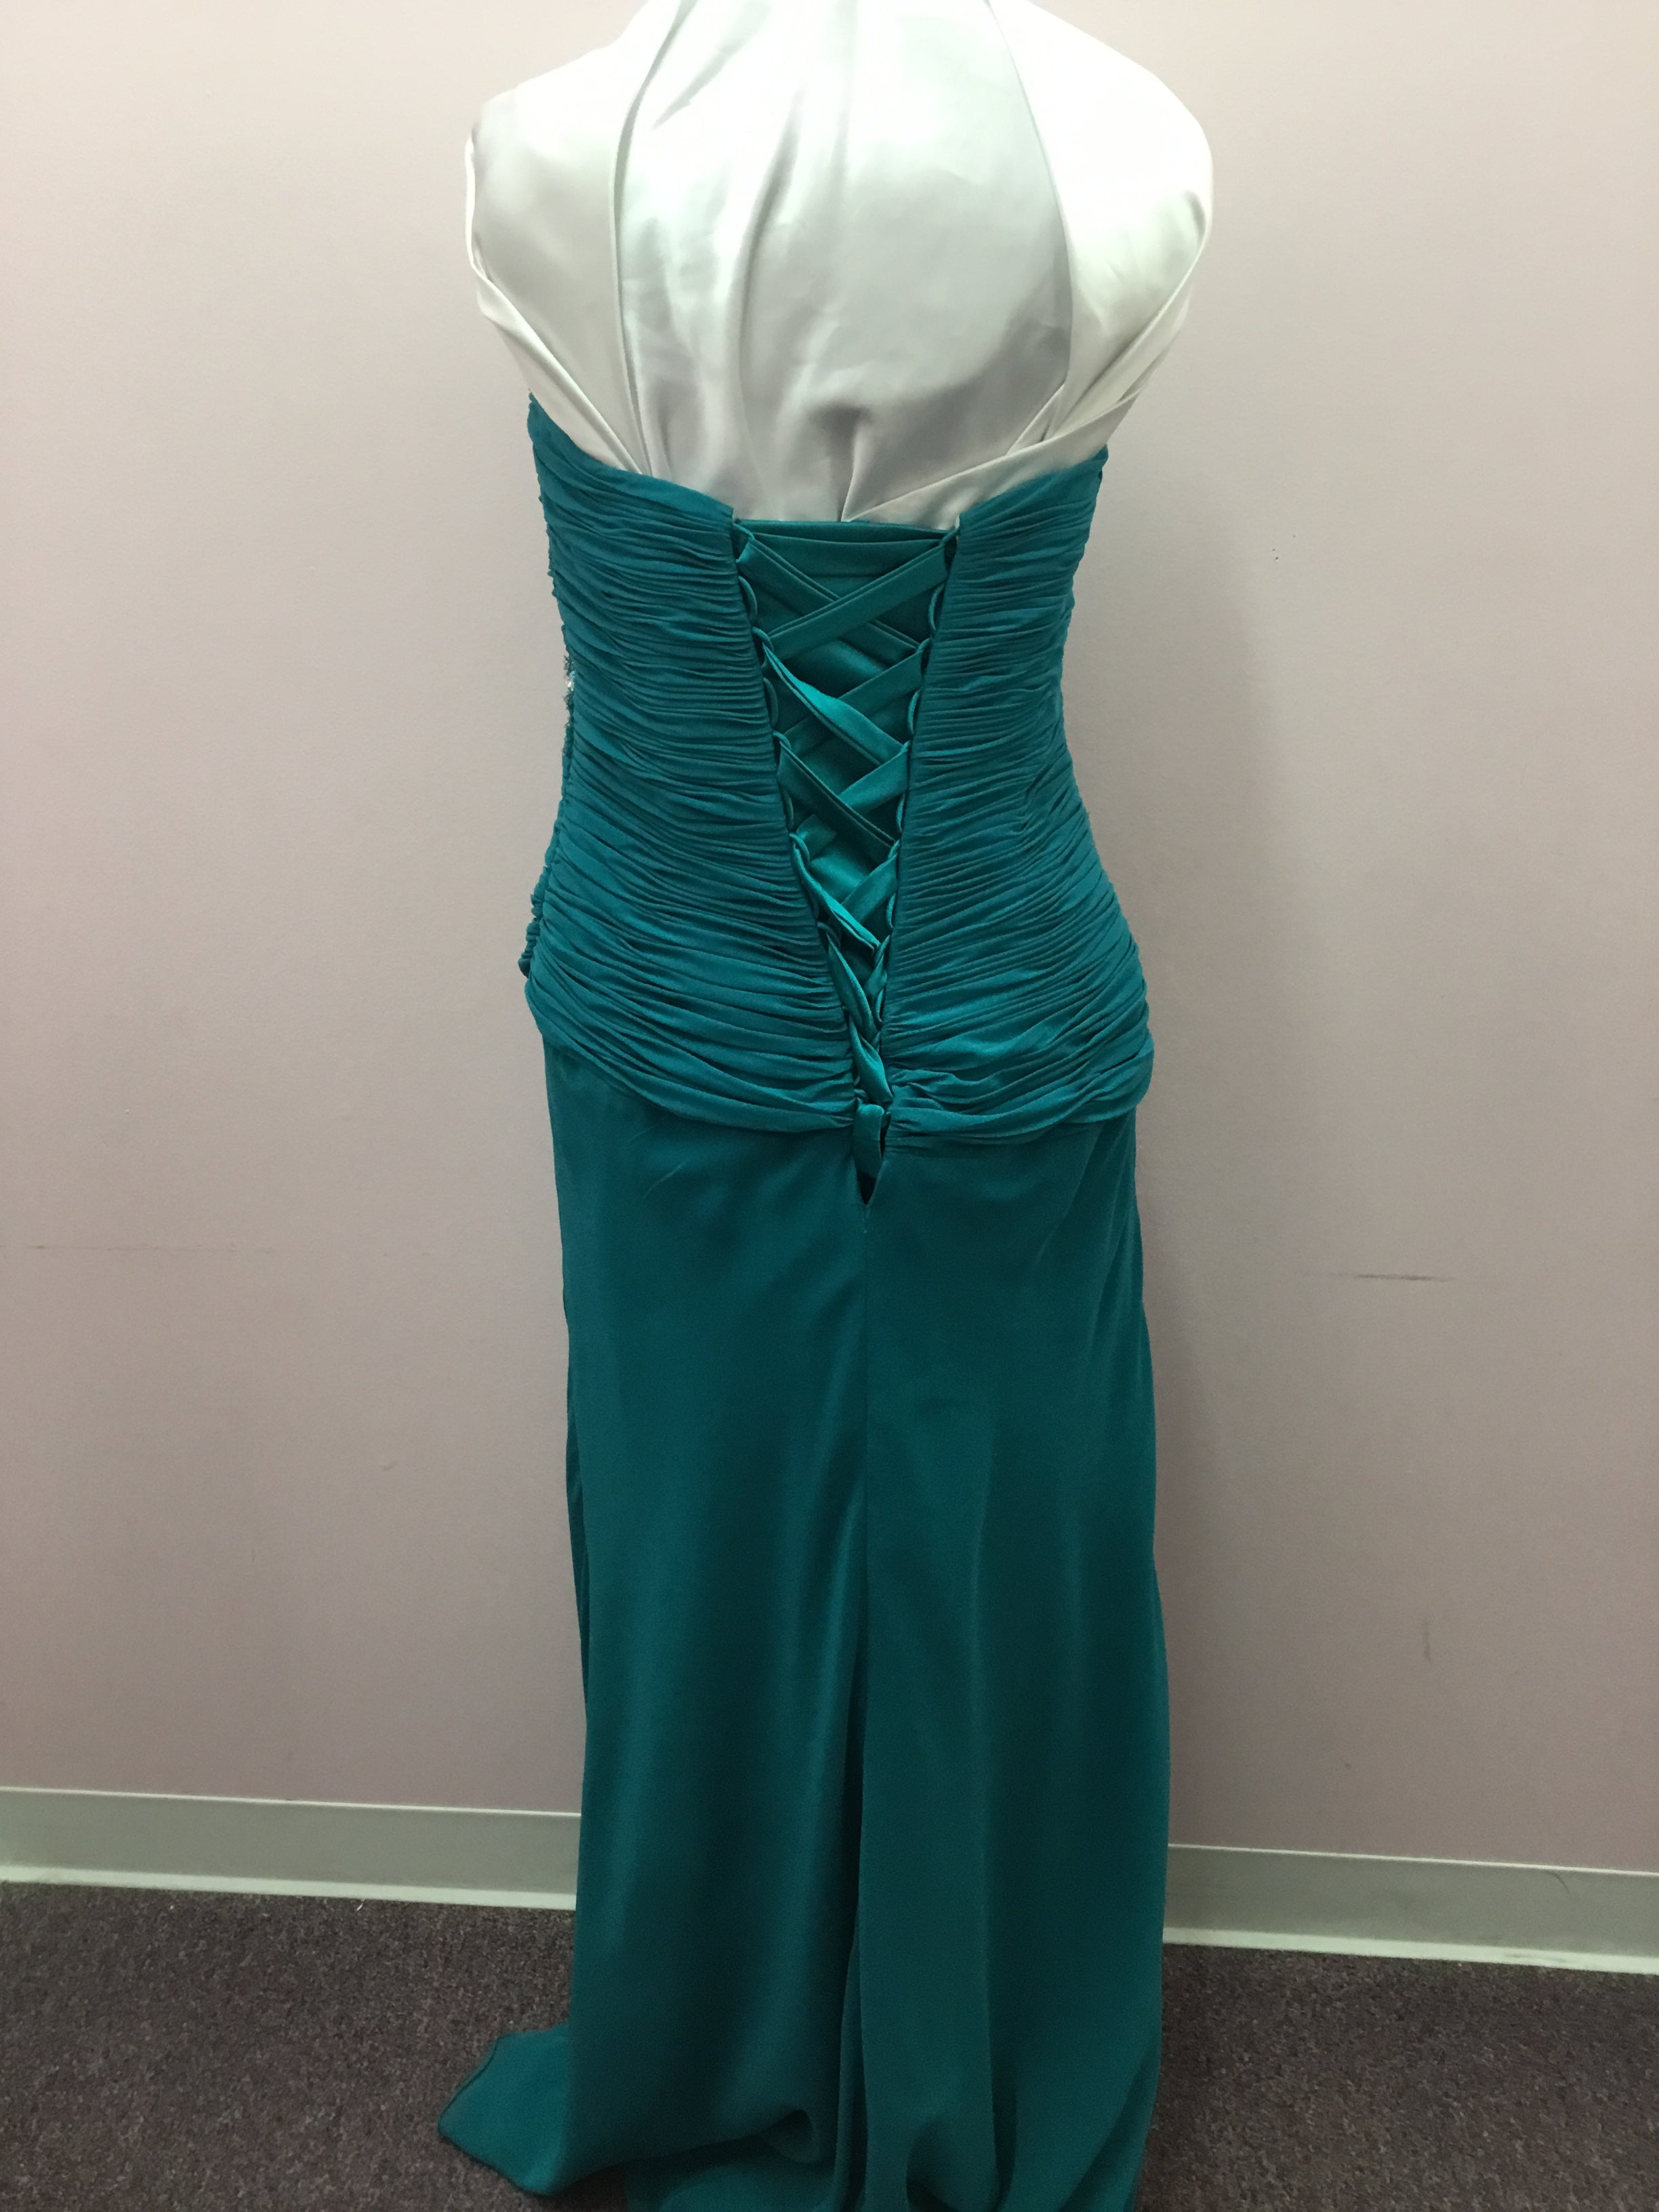 Strapless Turquoise Gown